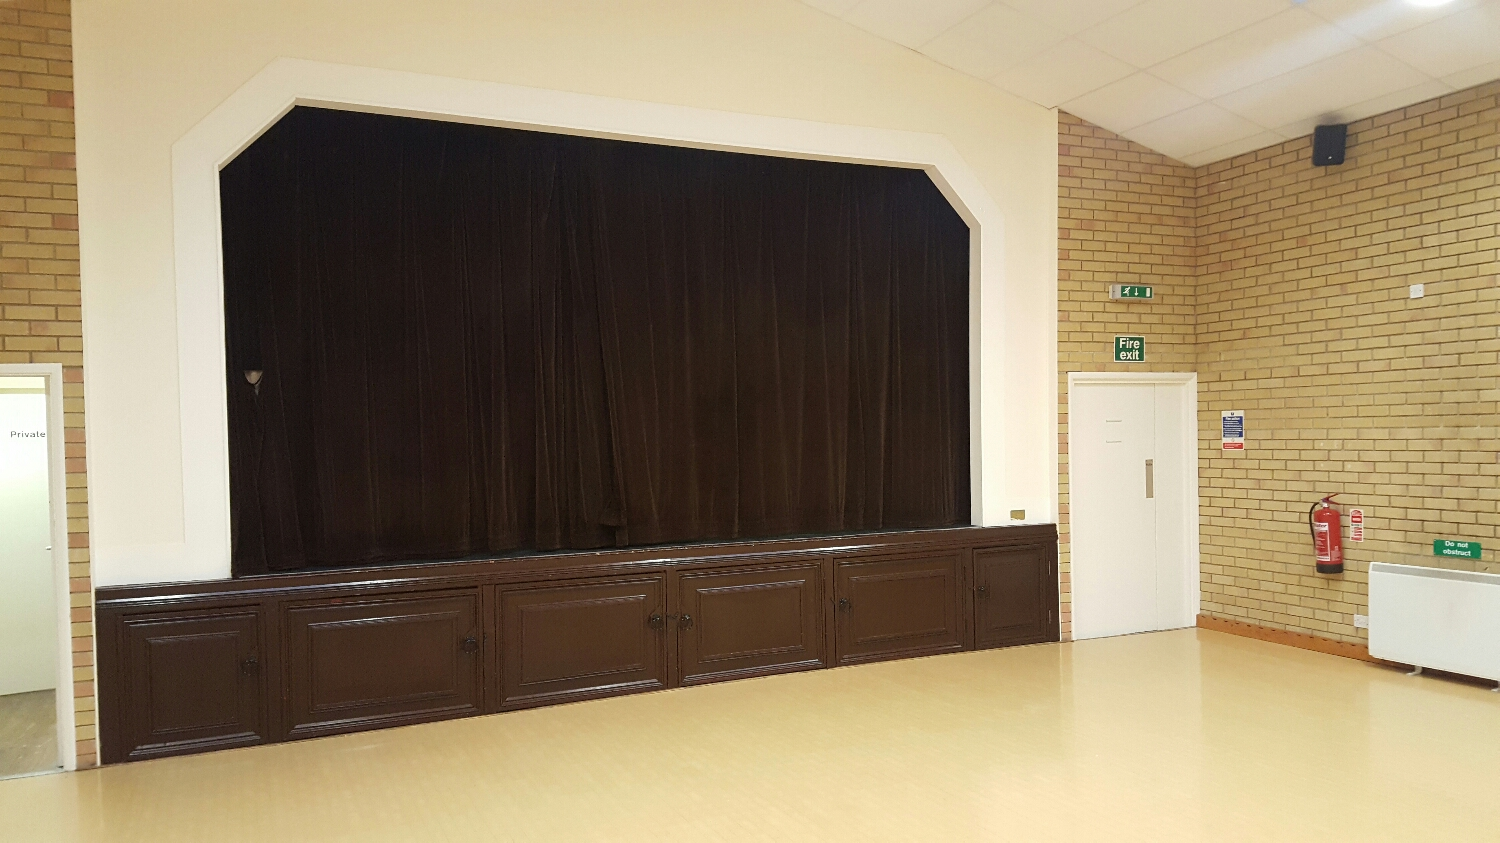 Main function room stage curtains and linings